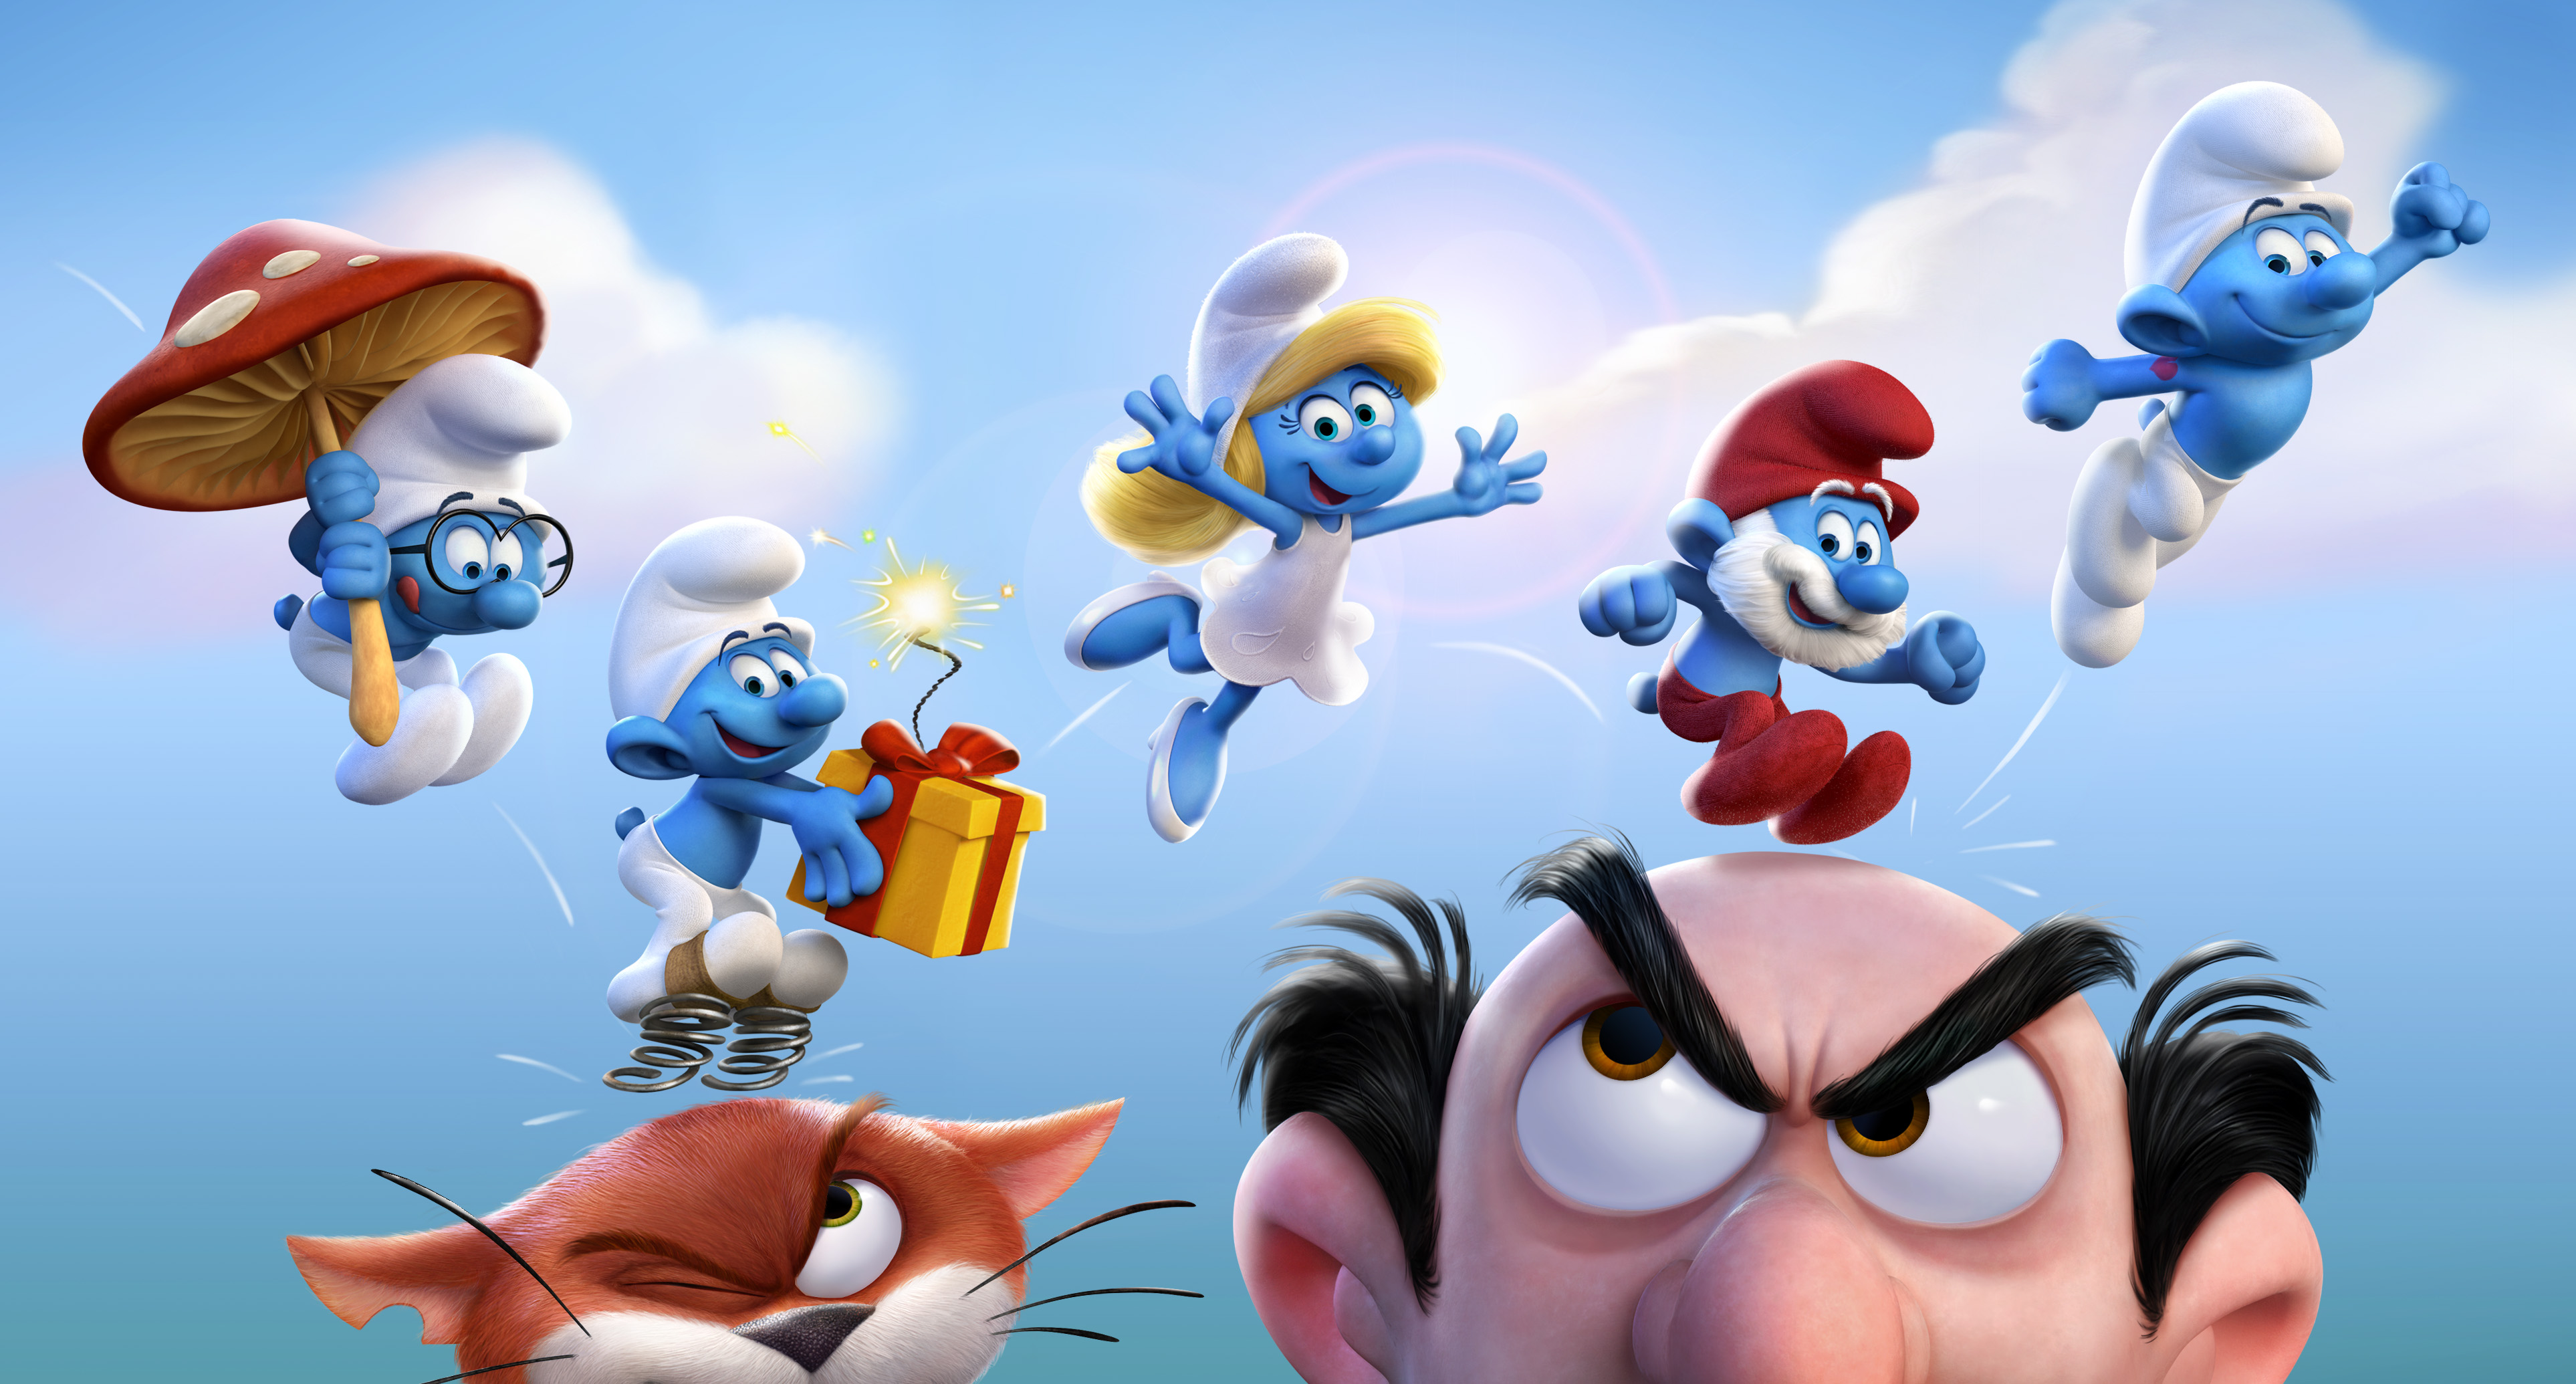 Never Smurf Up: Get Smurfy Announced! | EclipseMagazine